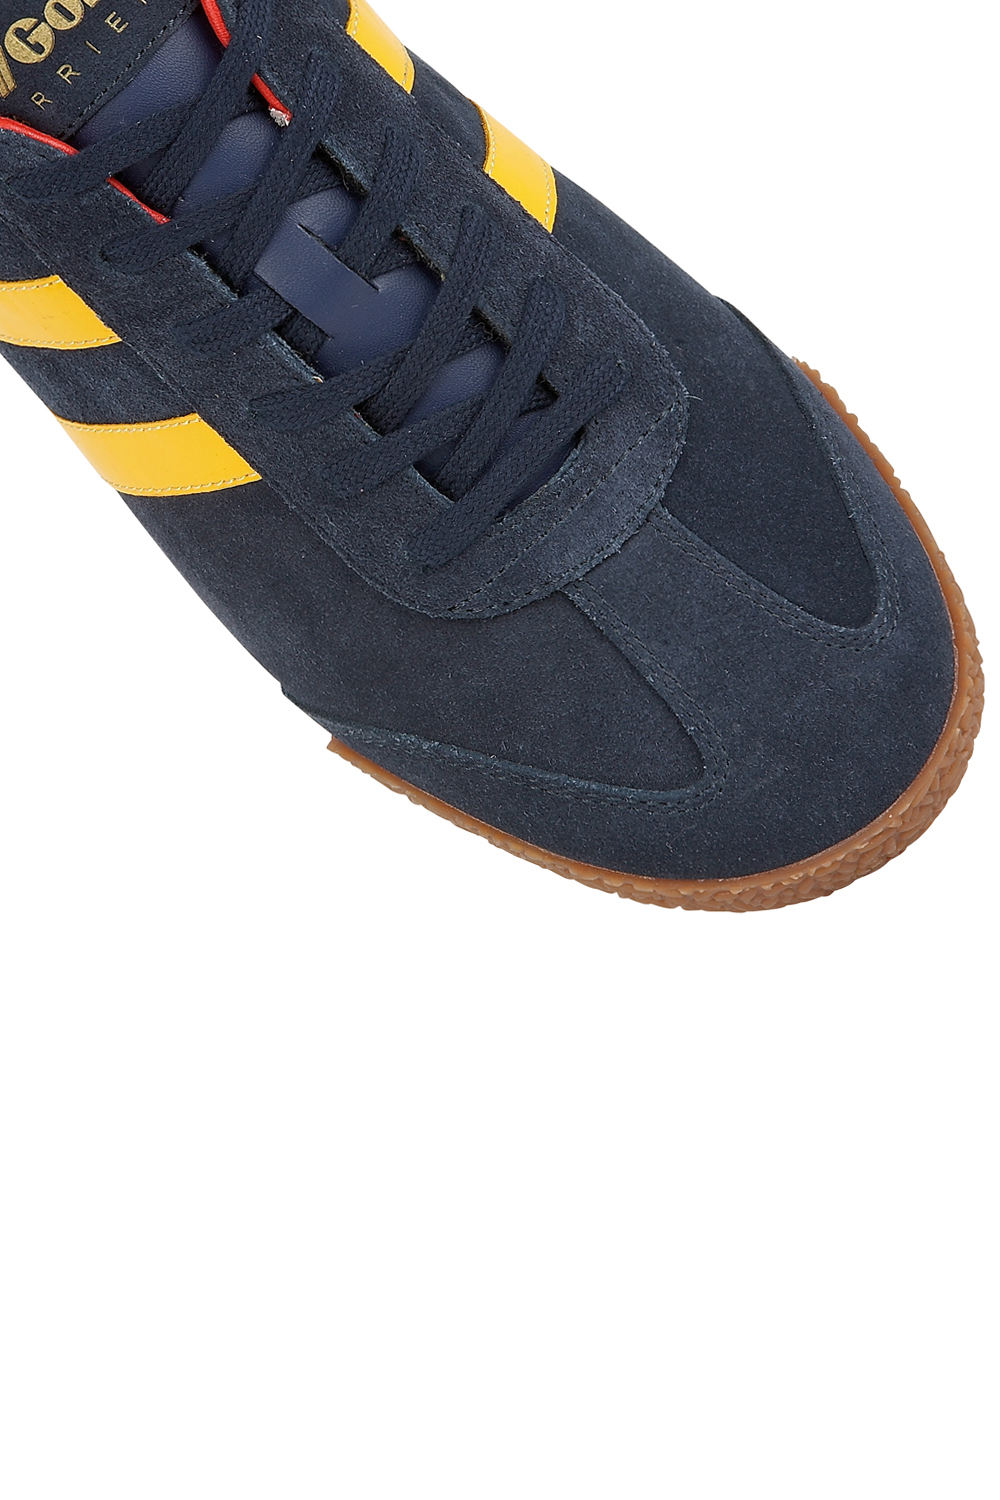 Gola-Harrier-Suede-Classic-Vintage-Lace-Up-Sneakers-Mens-Trainers-Low-Top-Shoes thumbnail 12